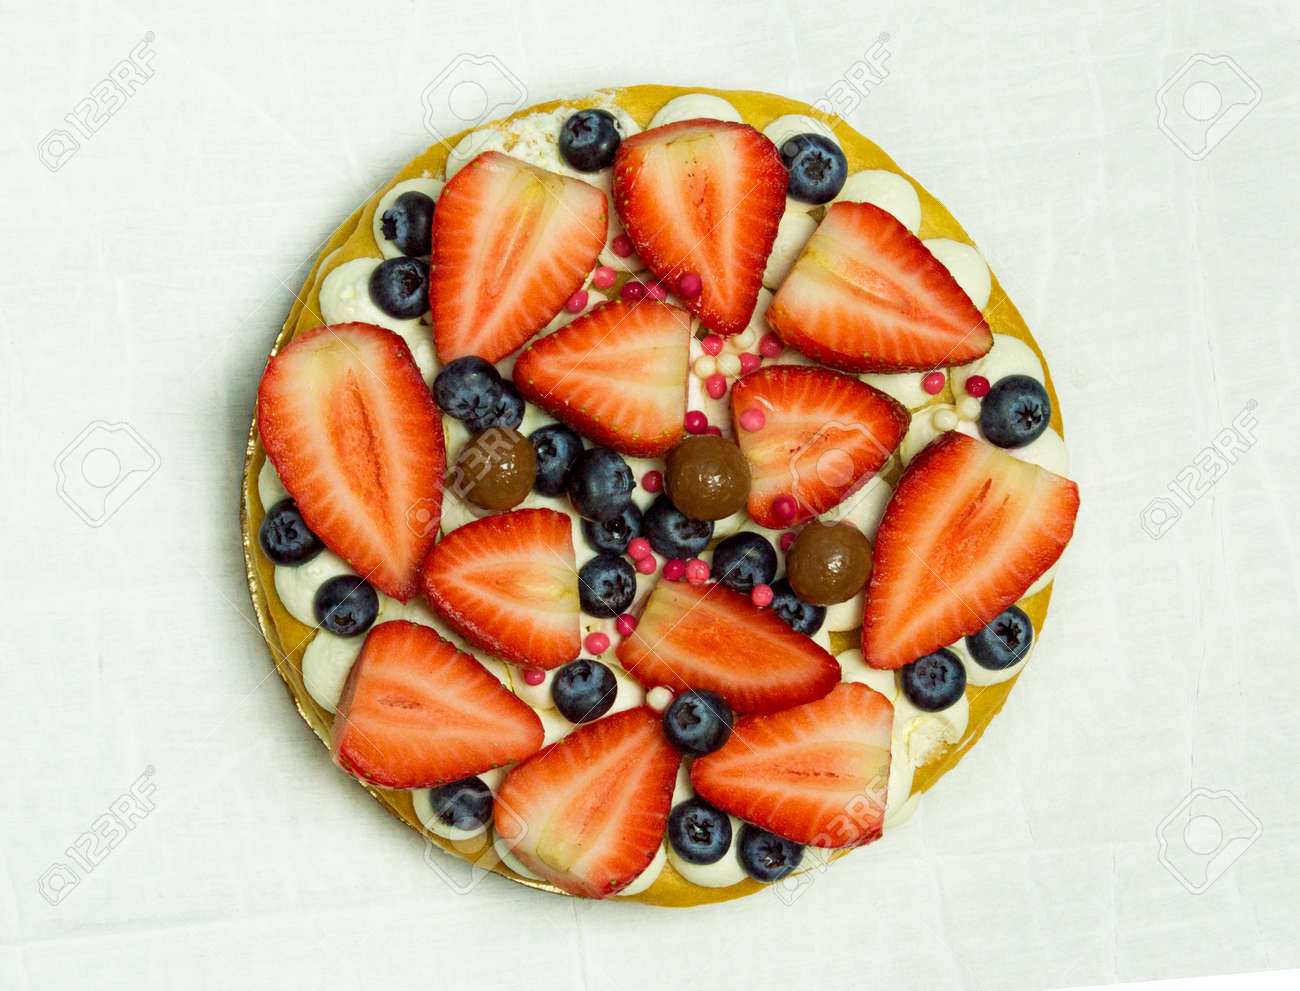 Delicious tart with fresh strawberries, raspberries and currants on the table. top view horizontal - 167392866